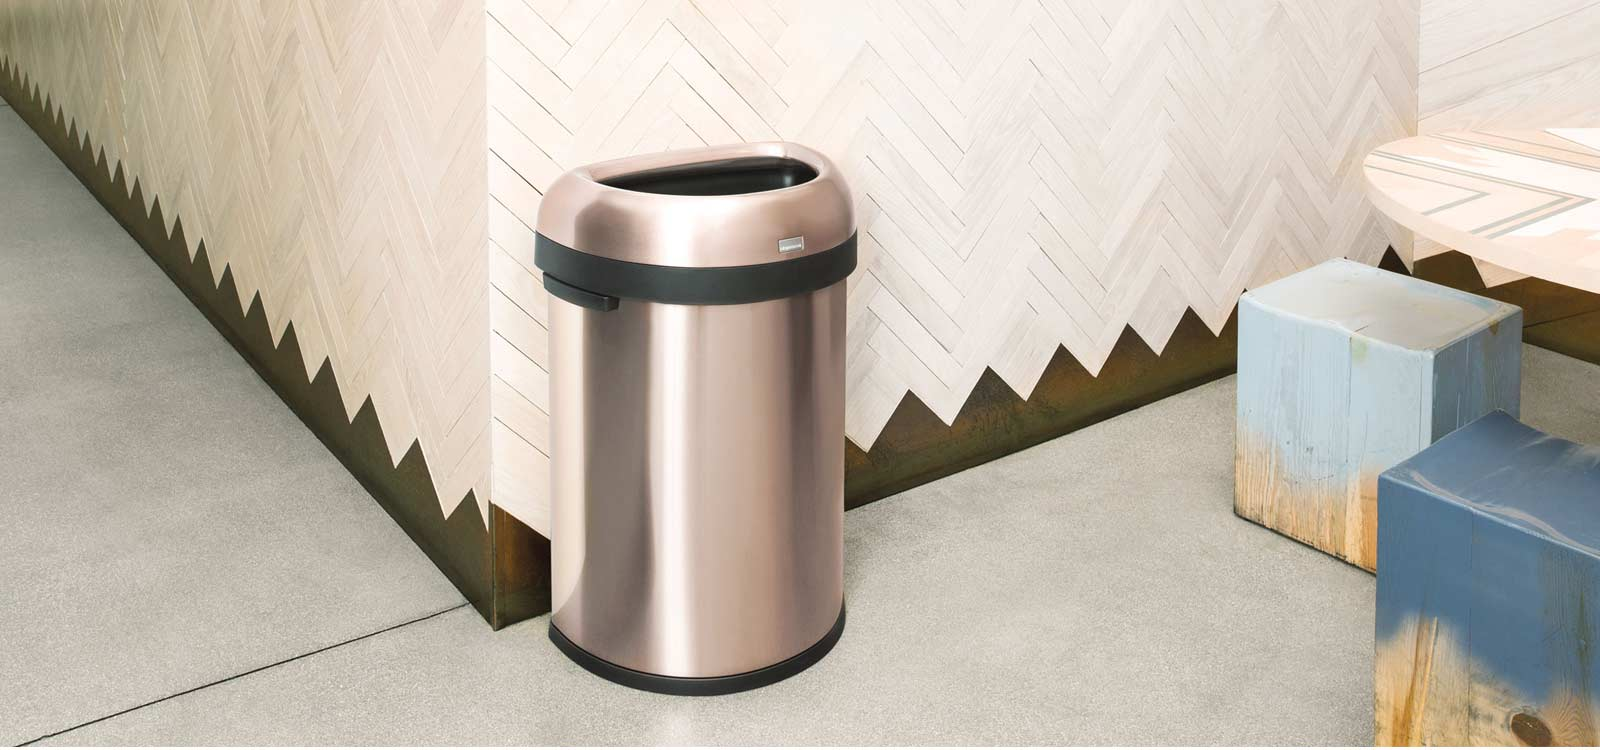 stylish-beautiful-trash-cans